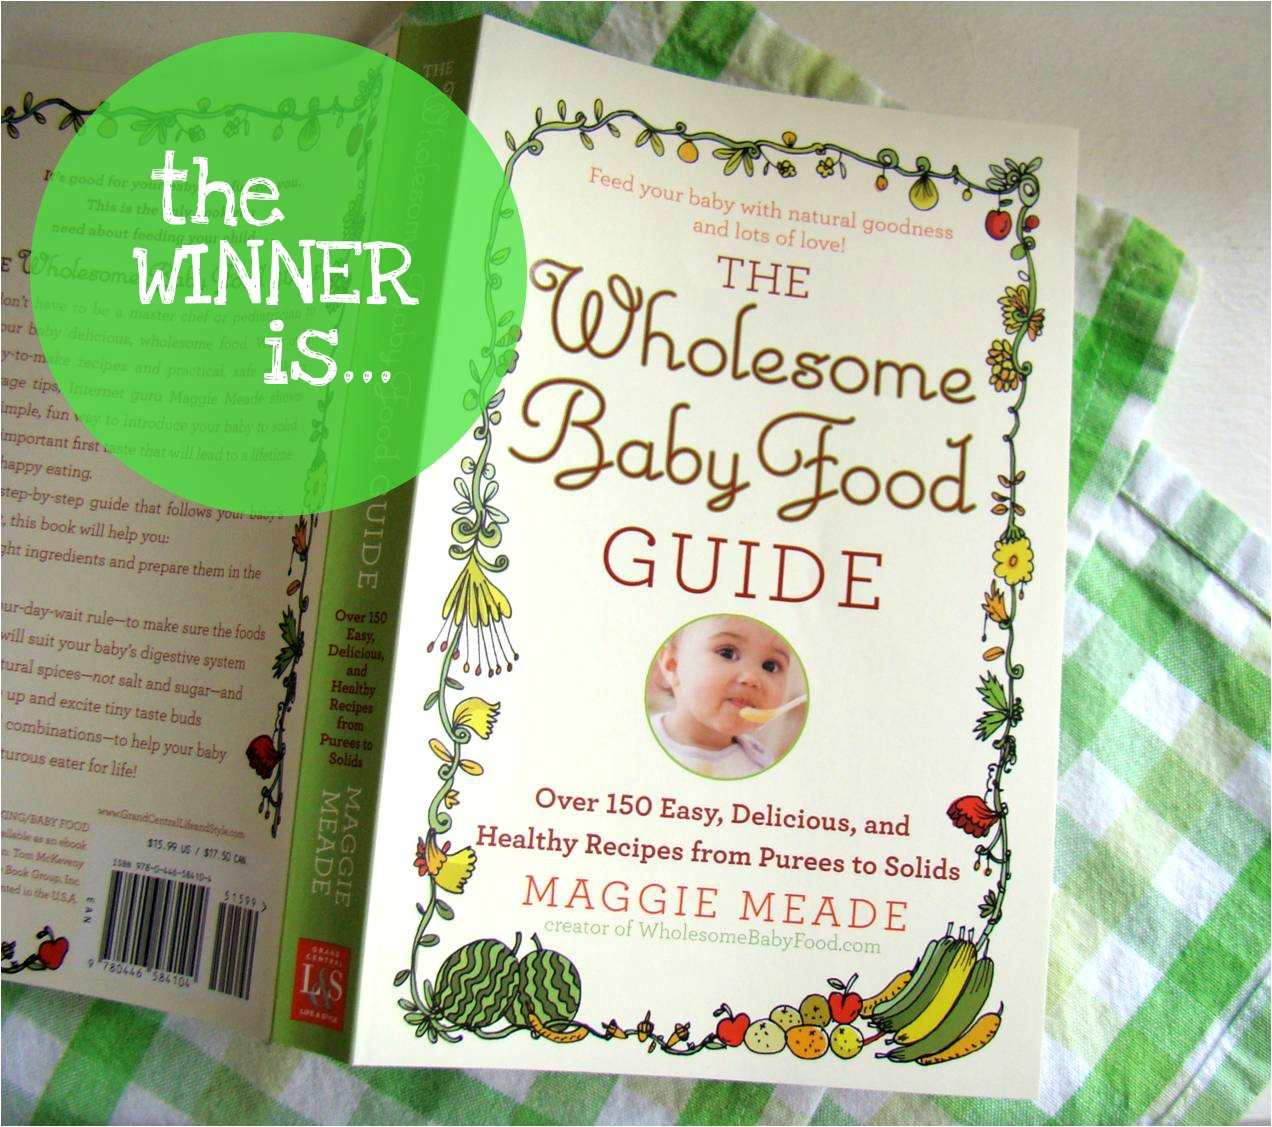 Family feedbag giveaway winner more making from scratch one reader has won a copy of maggie meades new book the wholesome baby food guide over 150 easy delicious and healthy recipes from purees to solids forumfinder Images